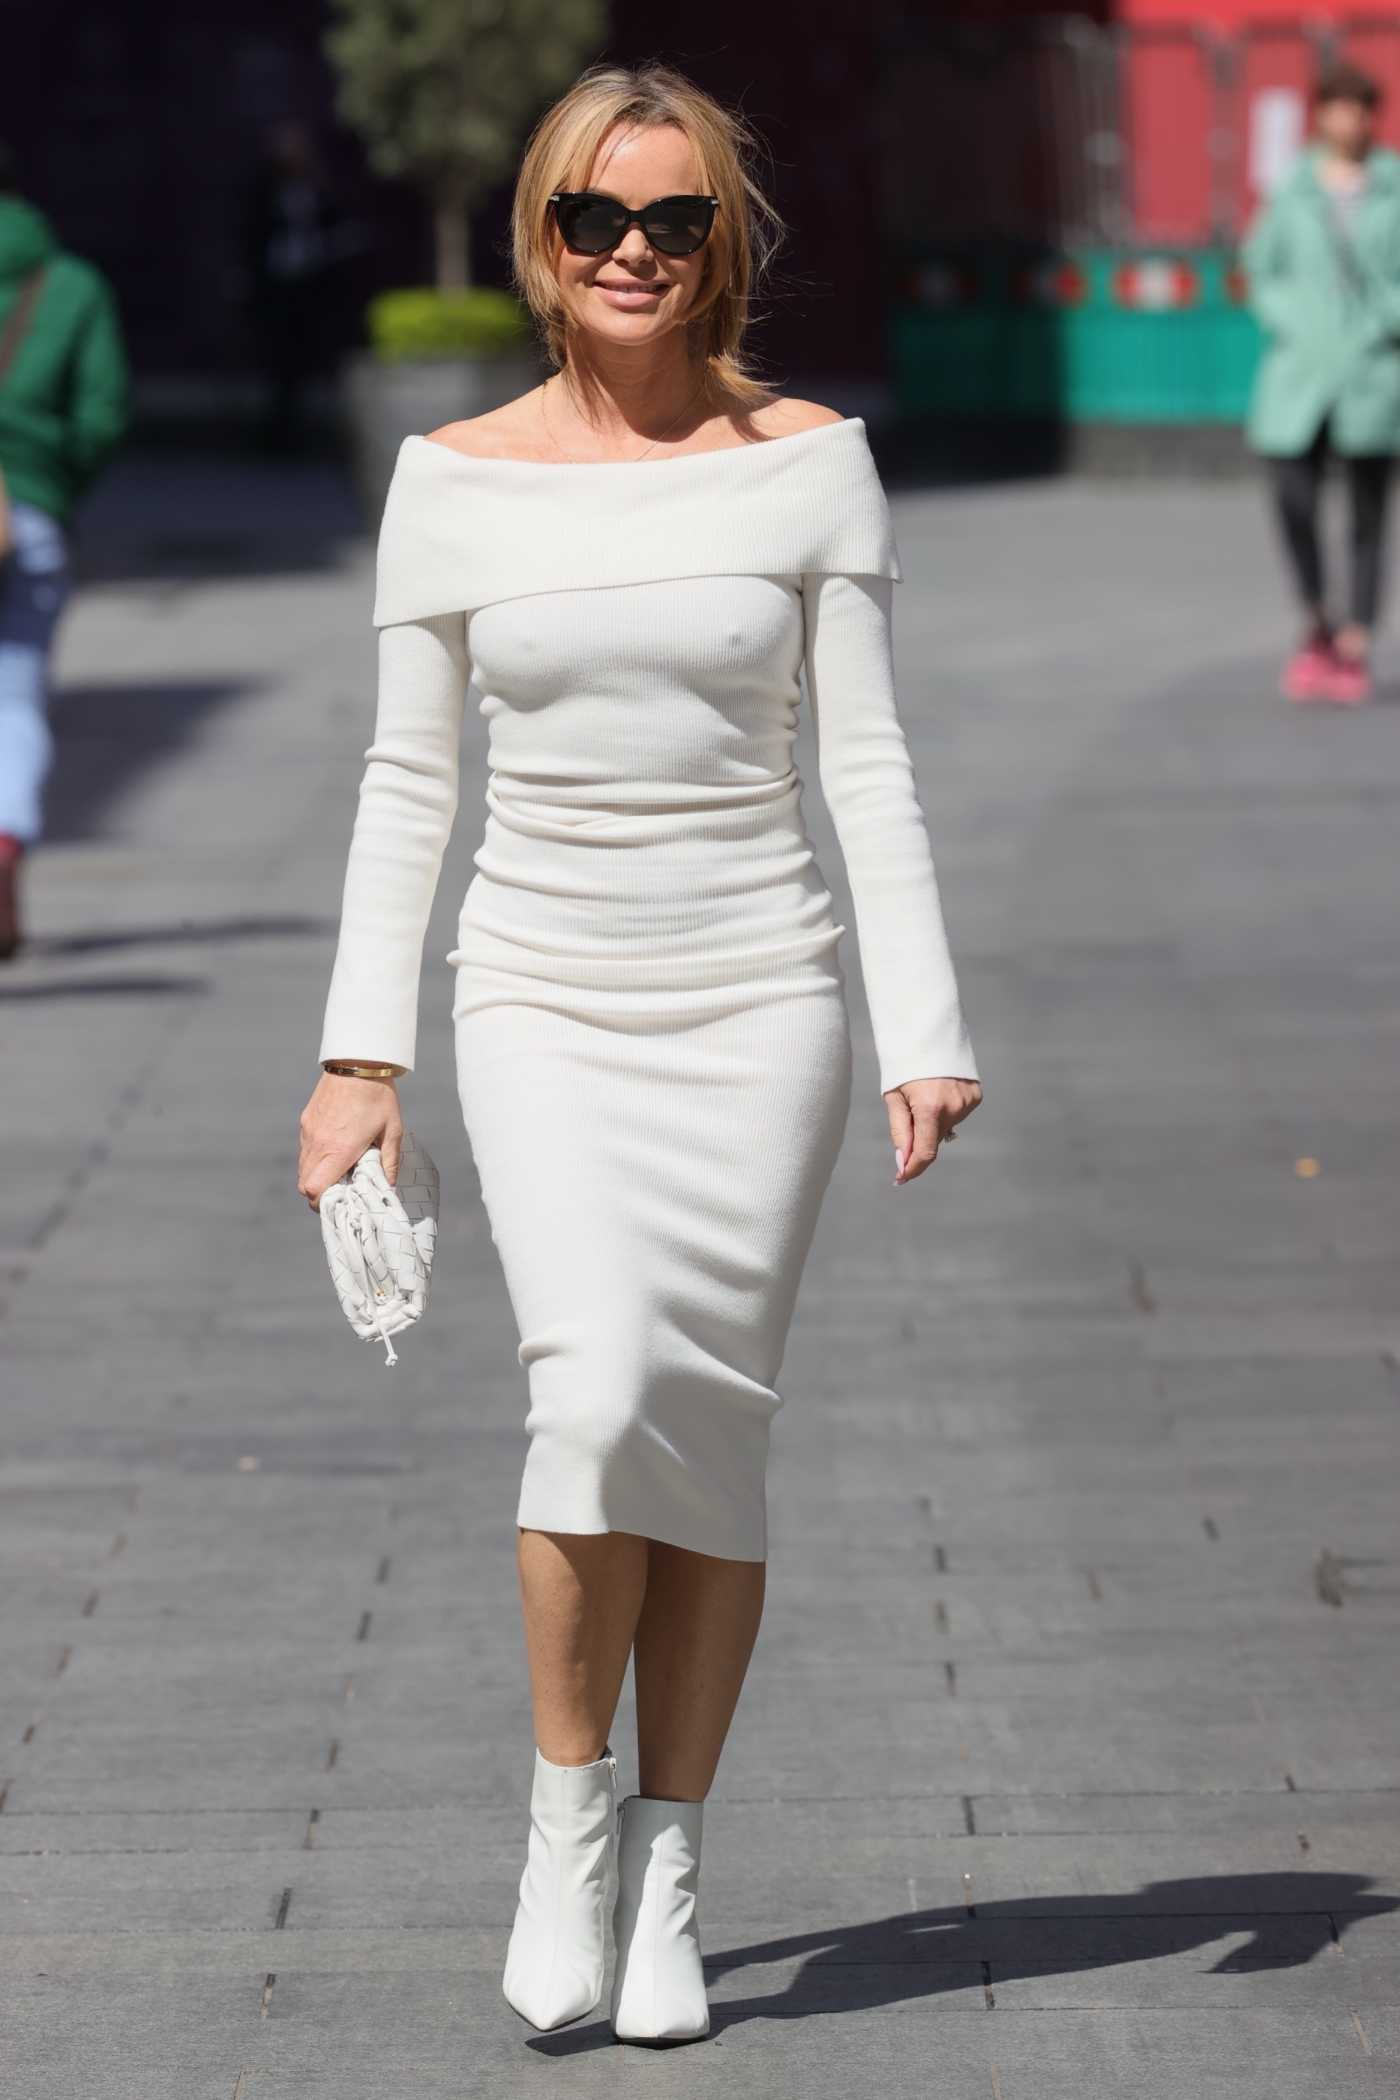 Amanda Holden in a White Tight Dress Arrives at the Heart Radio in London 05/19/2021